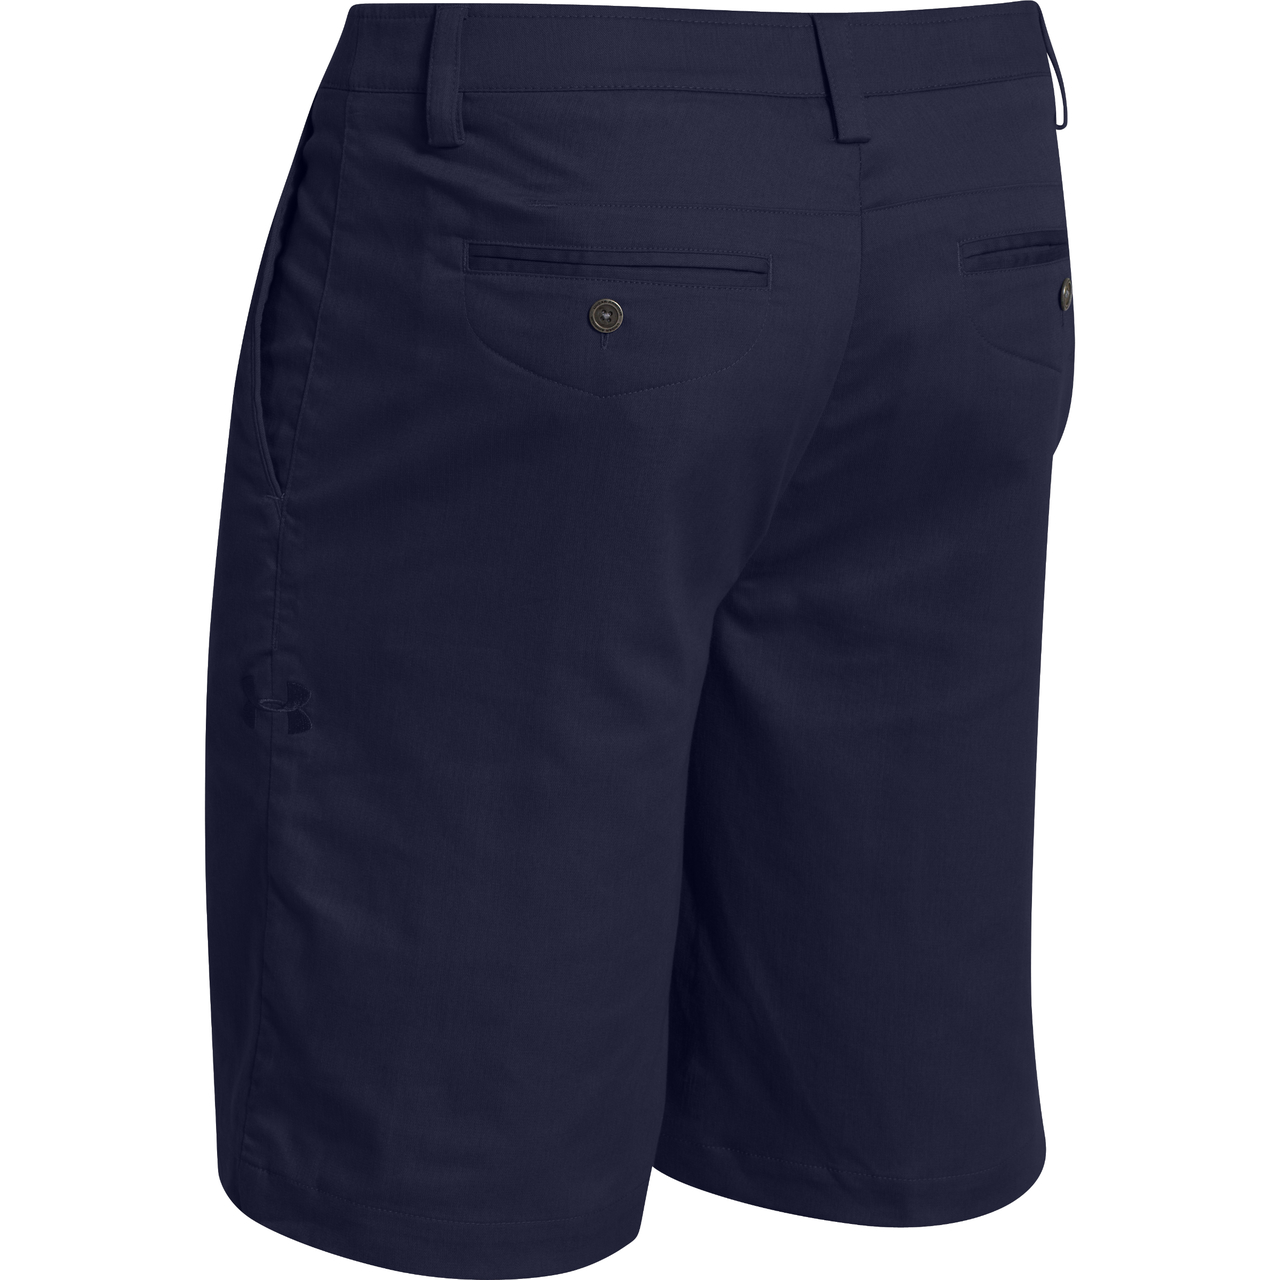 detailed look 5b48e 12808 Under Armour Men s Pleated Performance Short - Midnight Navy